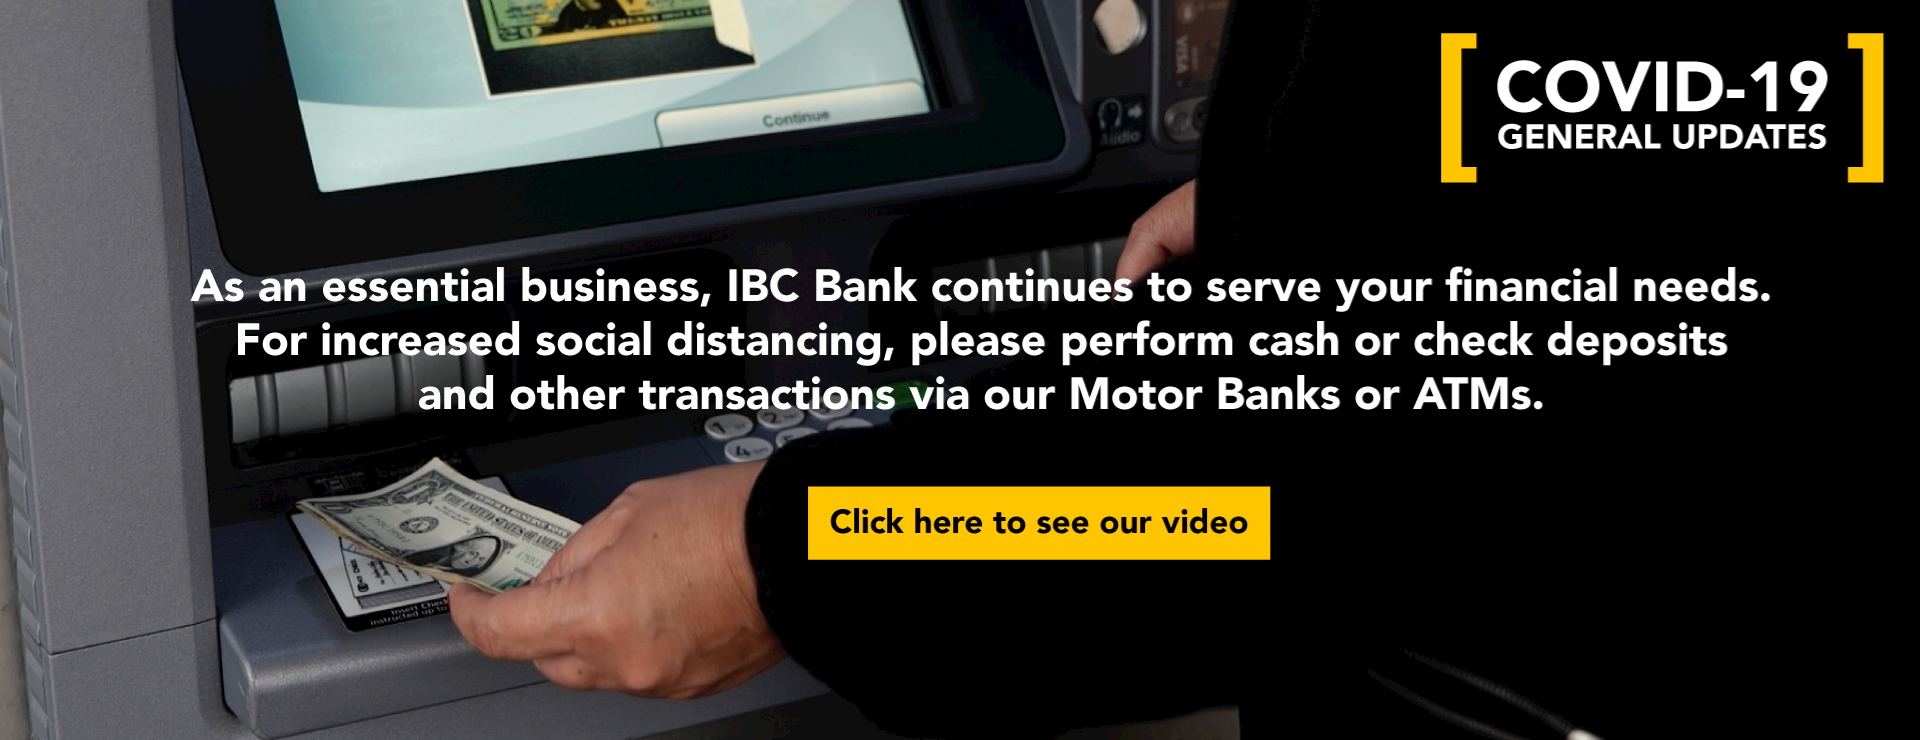 March 2020 - ATM and Motor Bank Videos